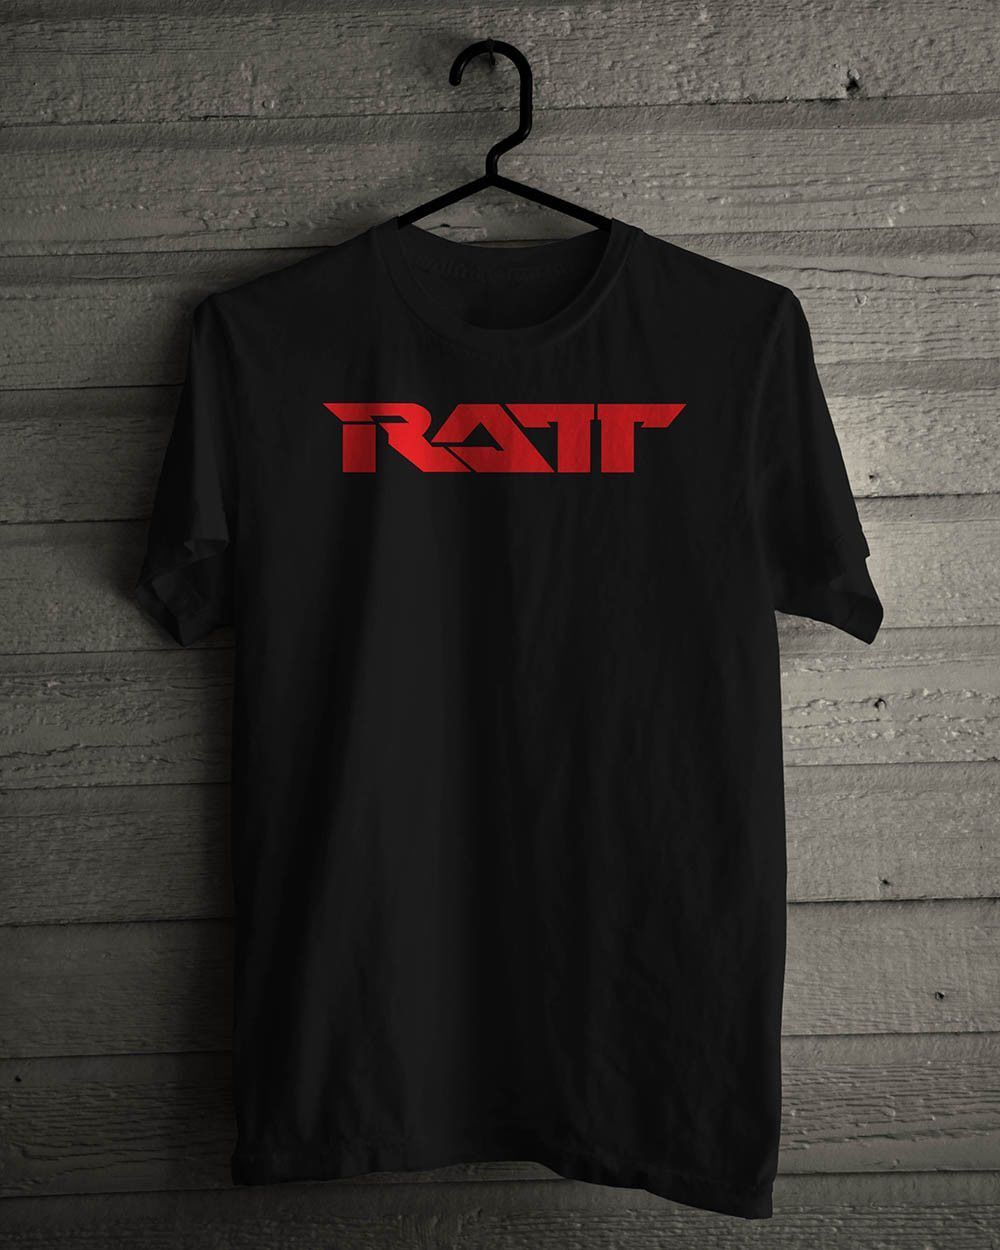 <font><b>Ratt</b></font> Heavy Metal Music Legend Black <font><b>T</b></font>-<font><b>Shirt</b></font> New Fashion <font><b>Mens</b></font> Short Sleeve <font><b>T</b></font> <font><b>Shirt</b></font> Cotton <font><b>T</b></font> <font><b>Shirts</b></font> Hot Cheap <font><b>Men'S</b></font> image